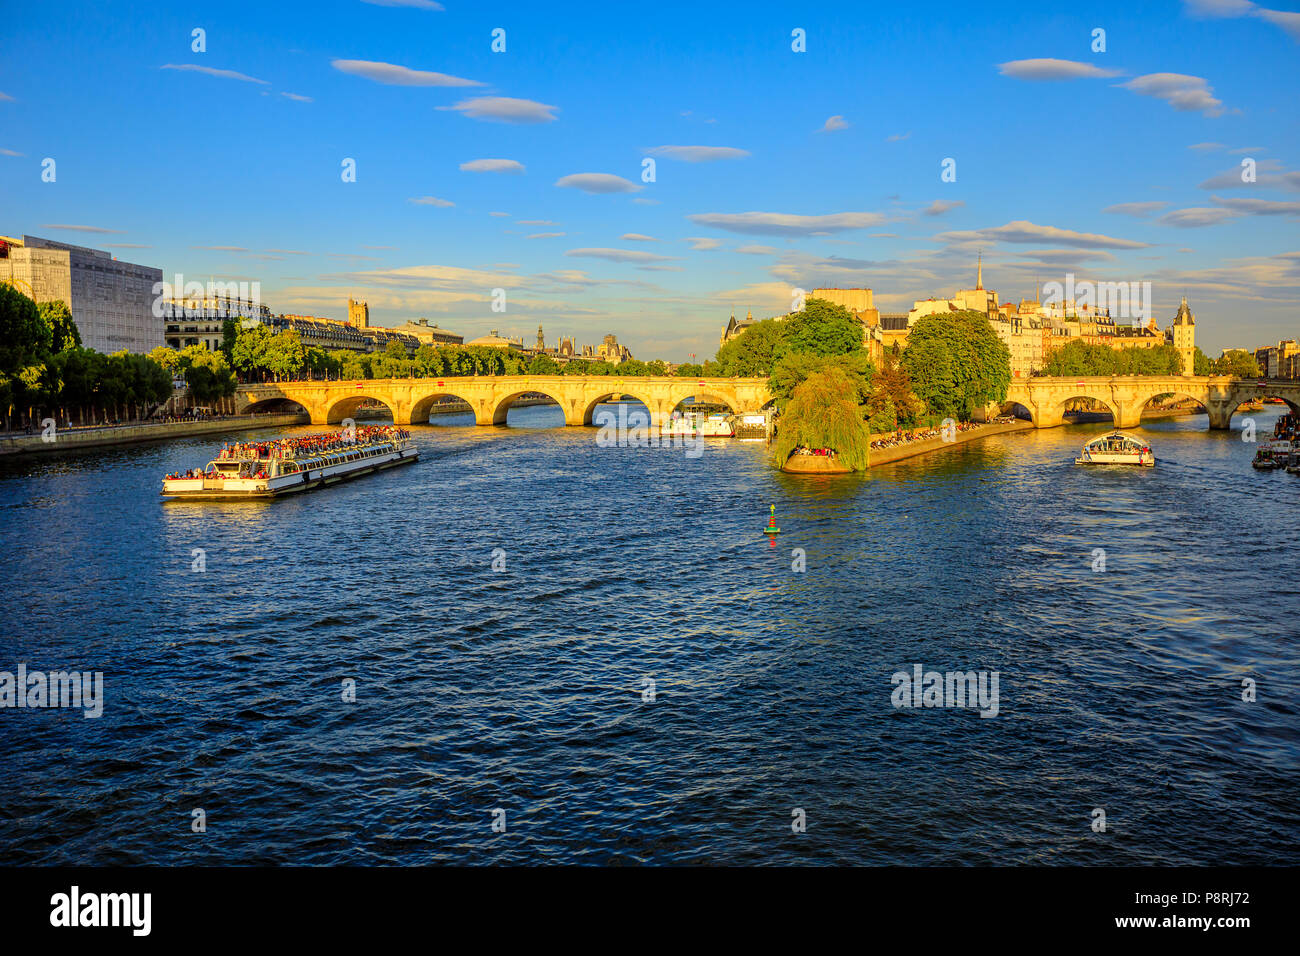 Tourist cruise on Seine river. Bateau mouche from Pont Neuf bridge and Notre Dame church on background. Tourist travelers in popular landmarks of Paris in France at sunset from Pont des Arts bridge. - Stock Image